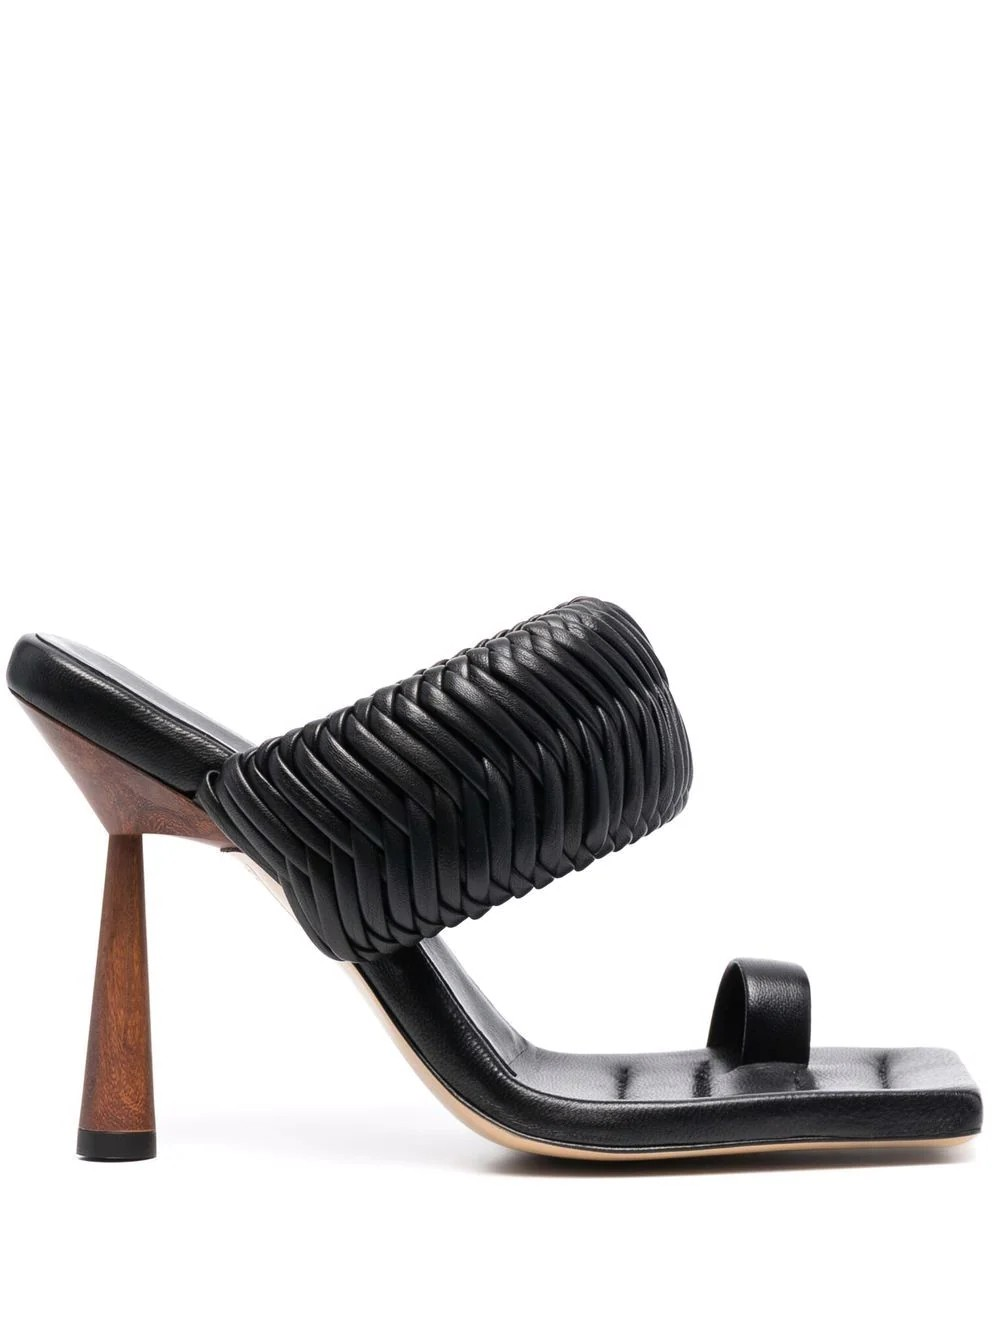 ROSIE1 Toe ring mule with woven strap in